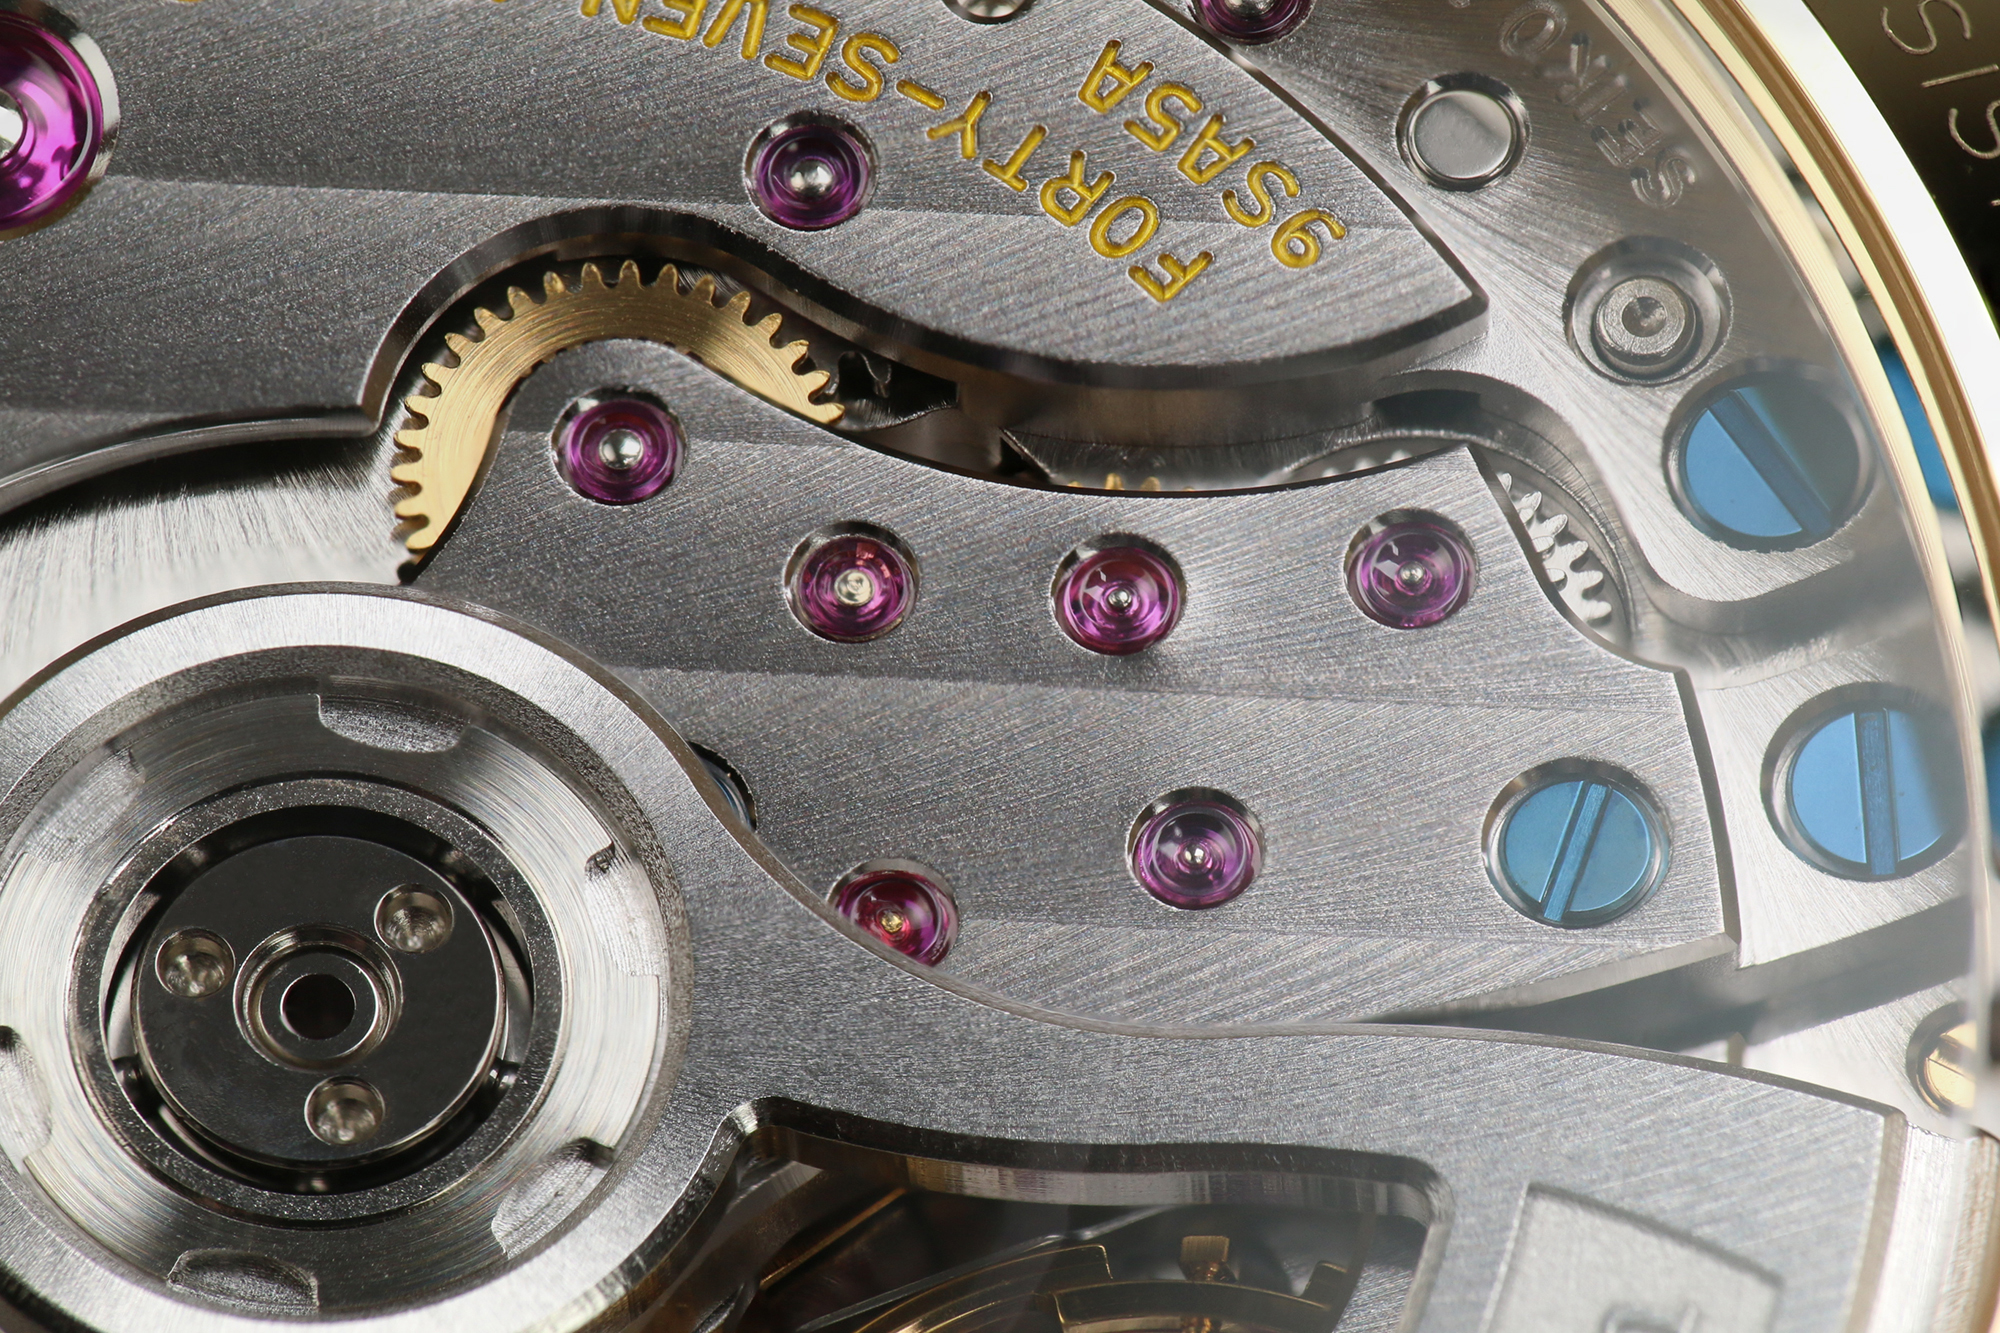 Grand Seiko 9SA5 caliber in detail.